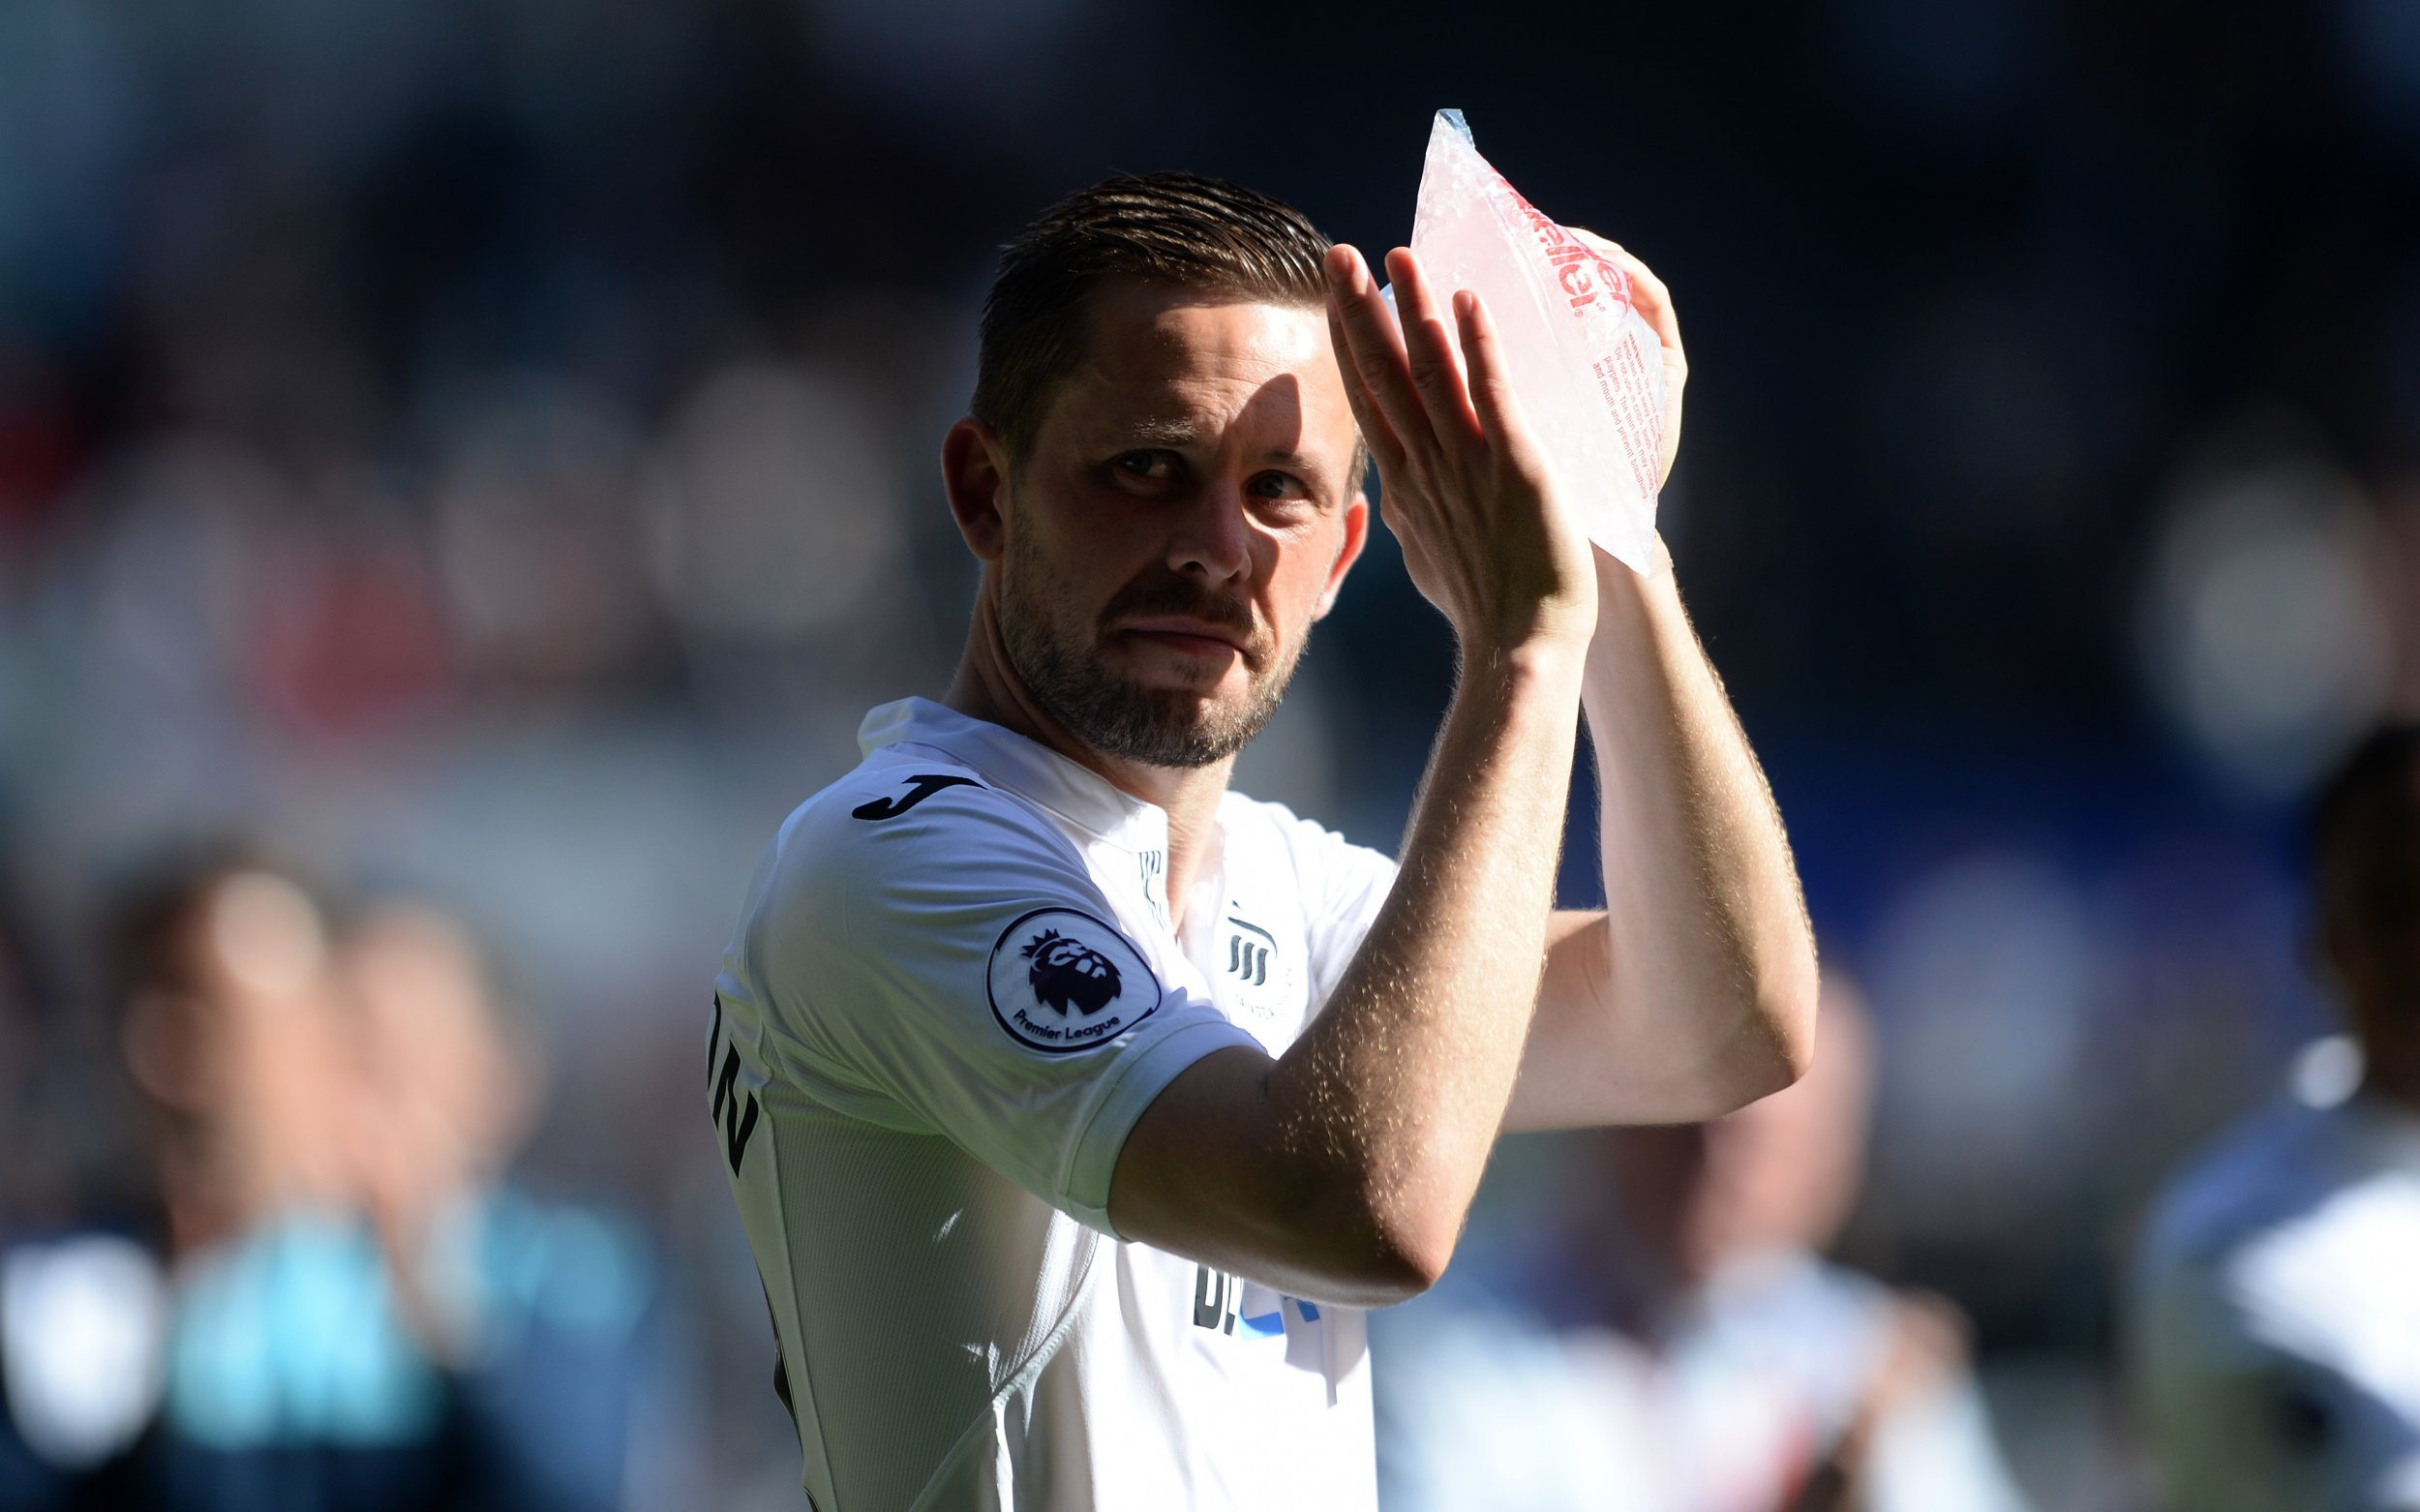 Swansea City midfielder Gylfi Sigurdsson.